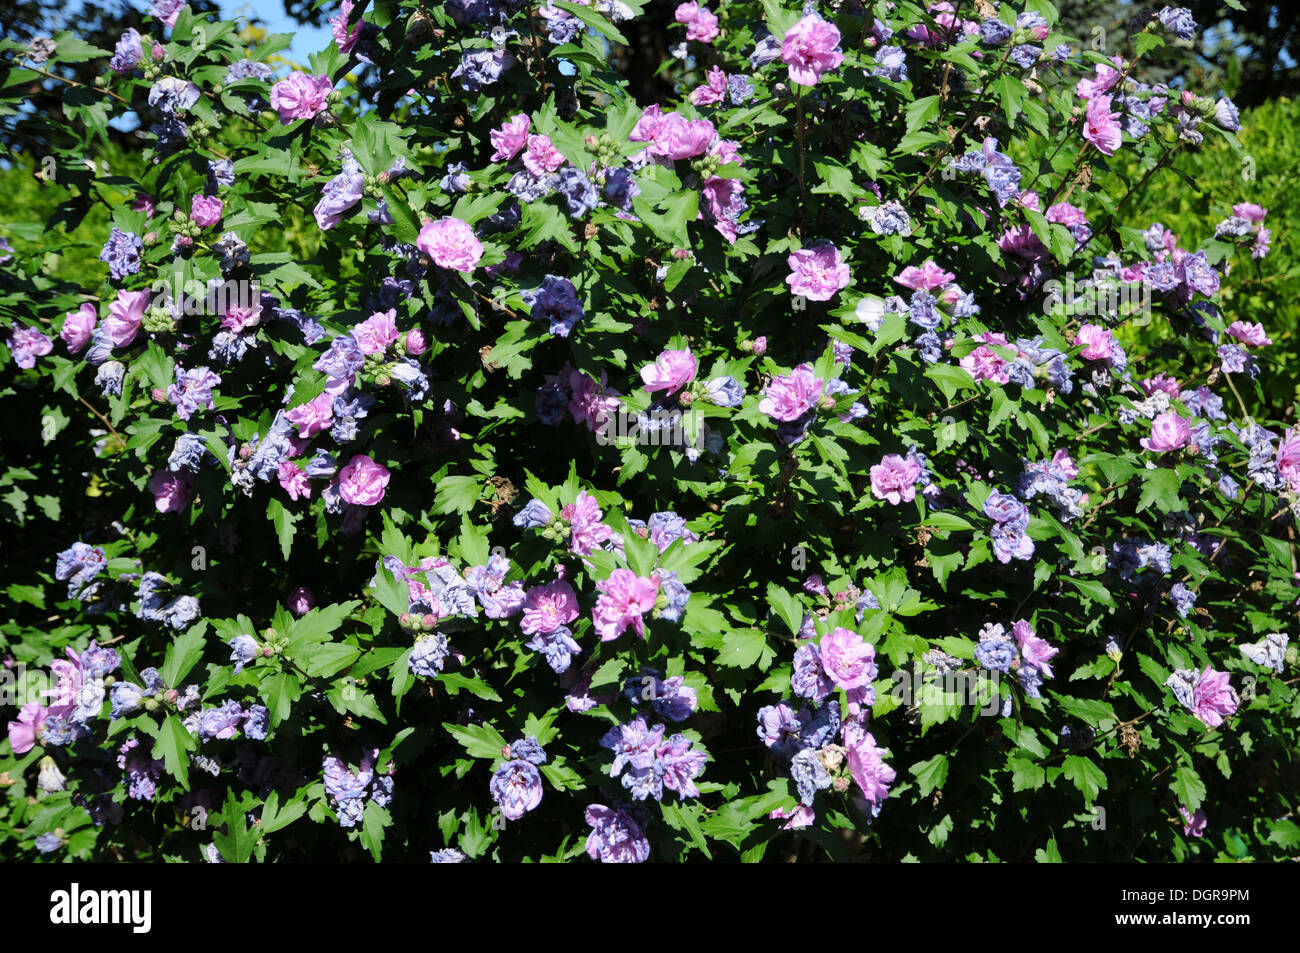 Strauch Sommerblüher Shrub Mallow Stock Photo 61978188 Alamy